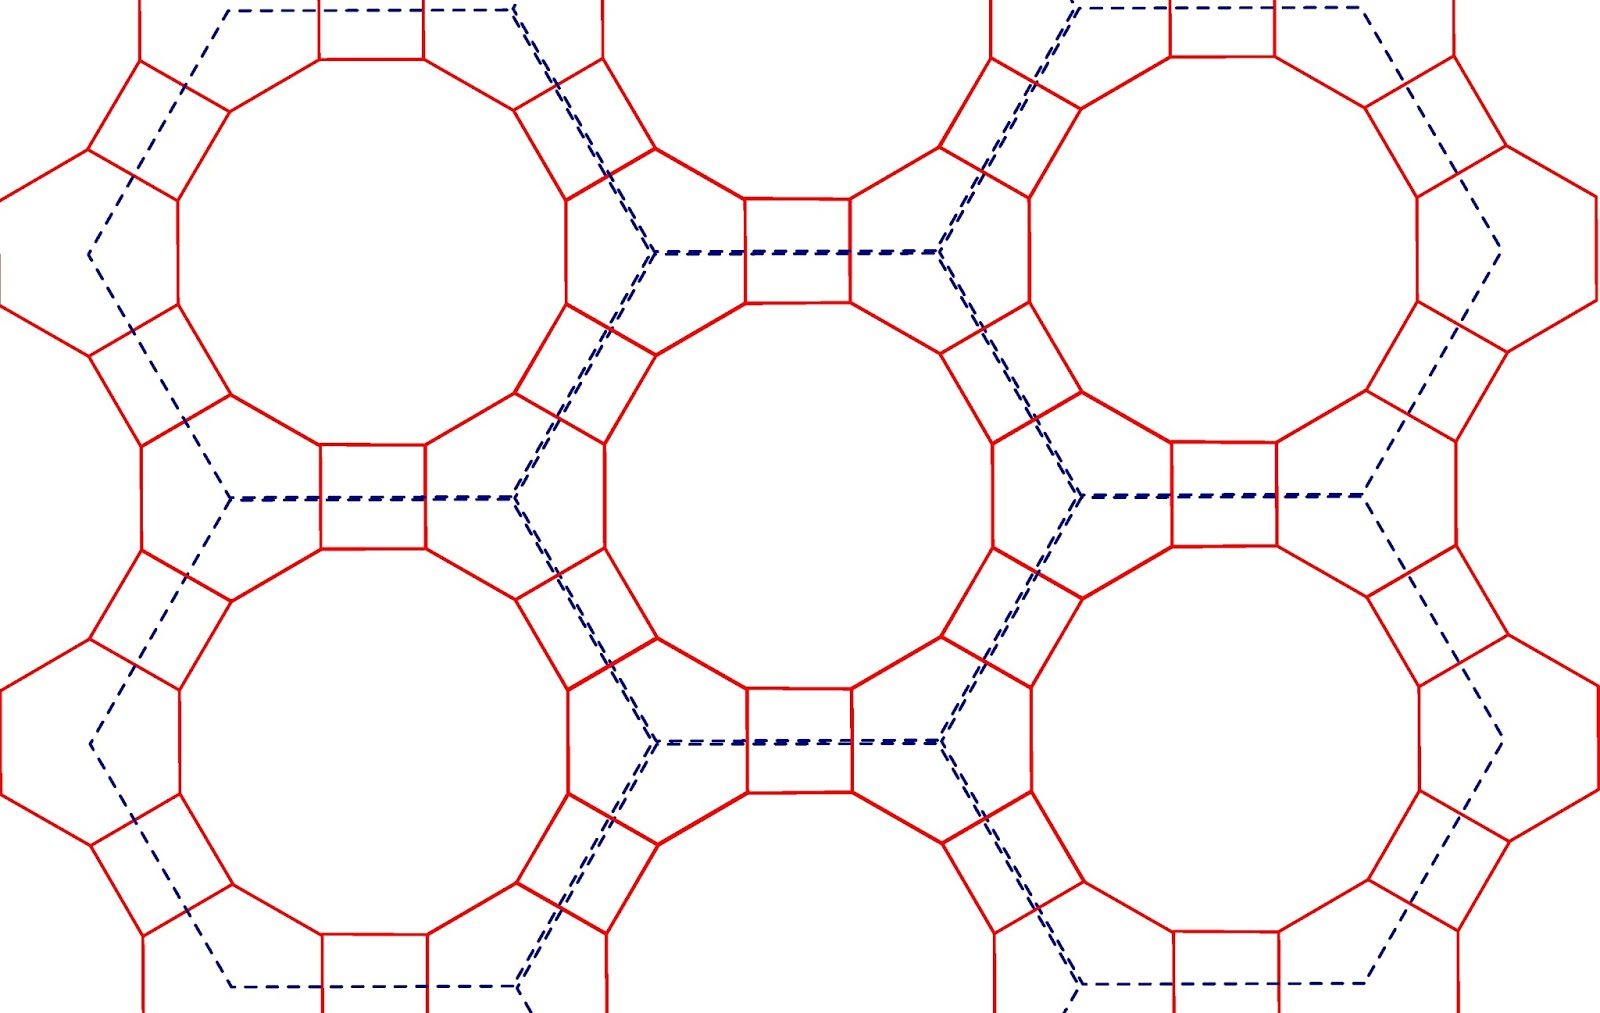 how to solve pattern of square solution